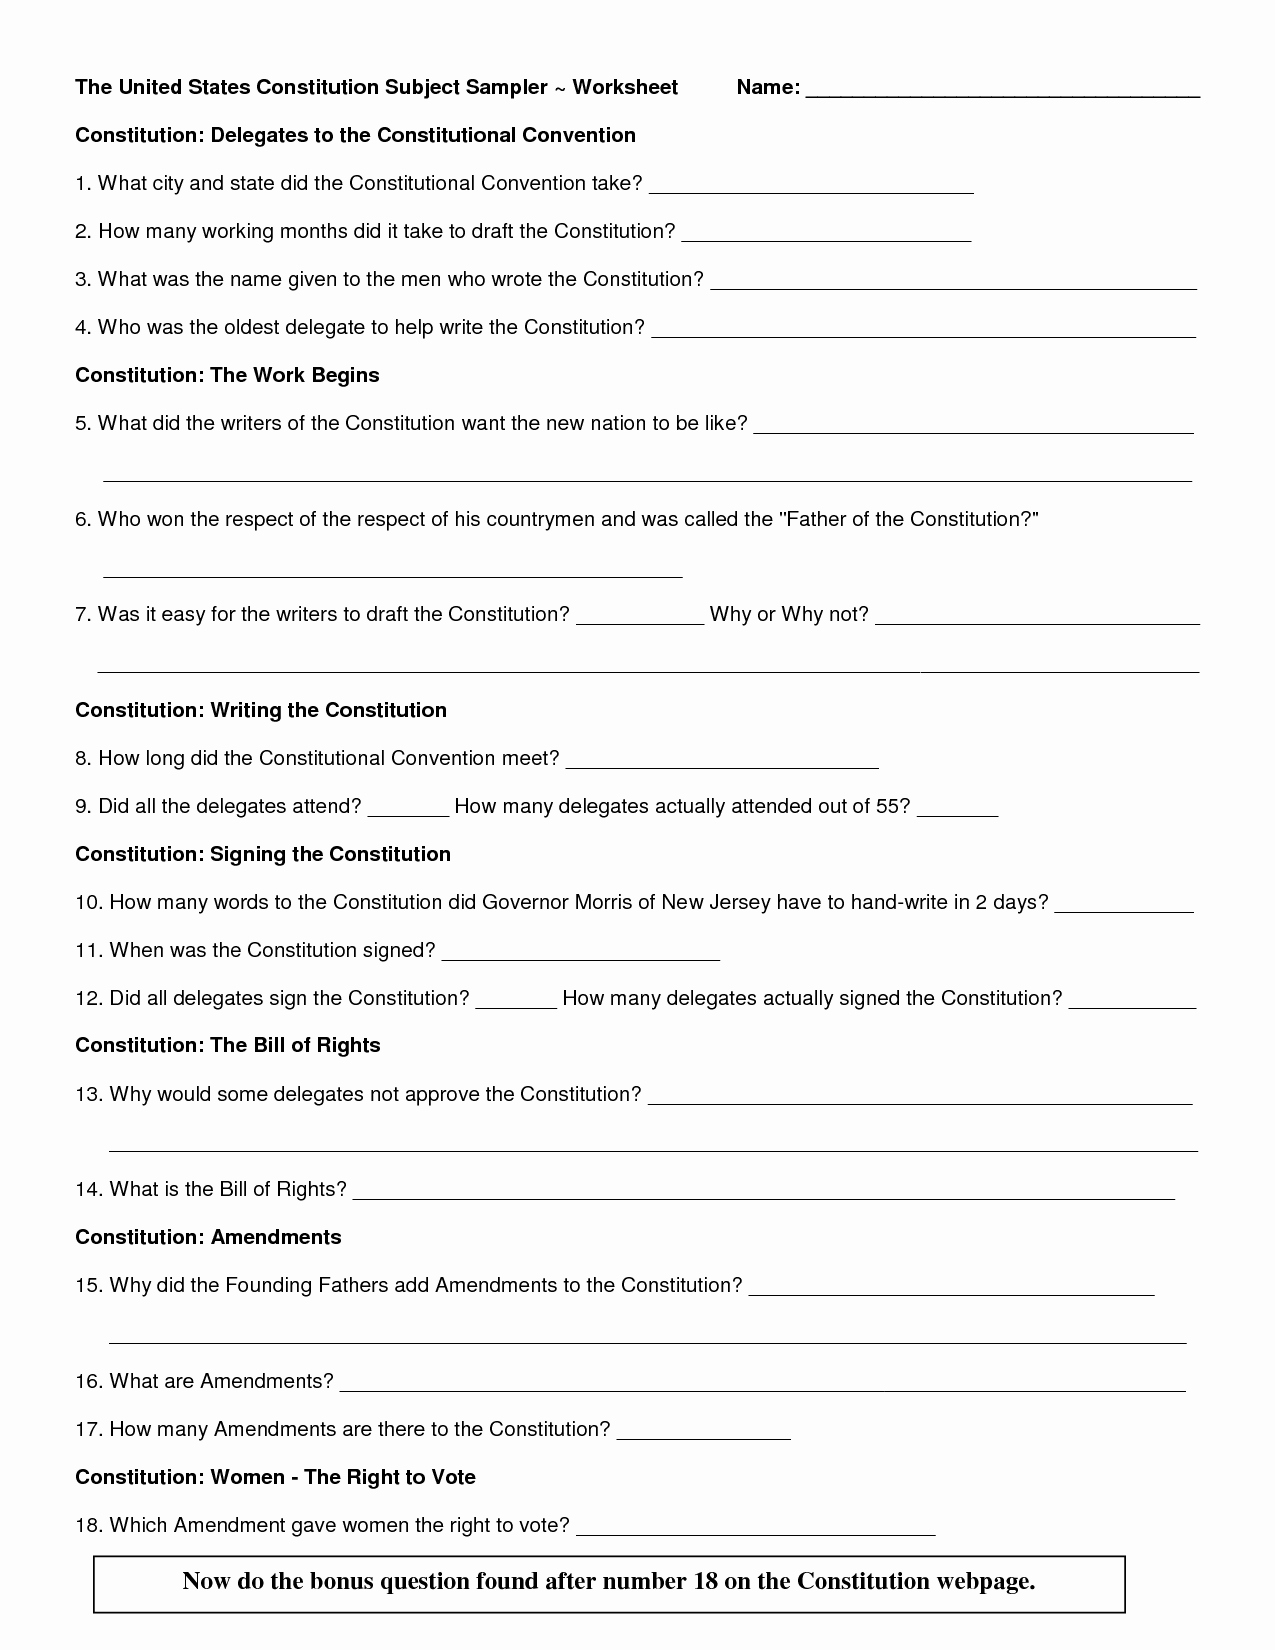 The Us Constitution Worksheet Answers Unique the Us Constitution Worksheet Virginia Plan